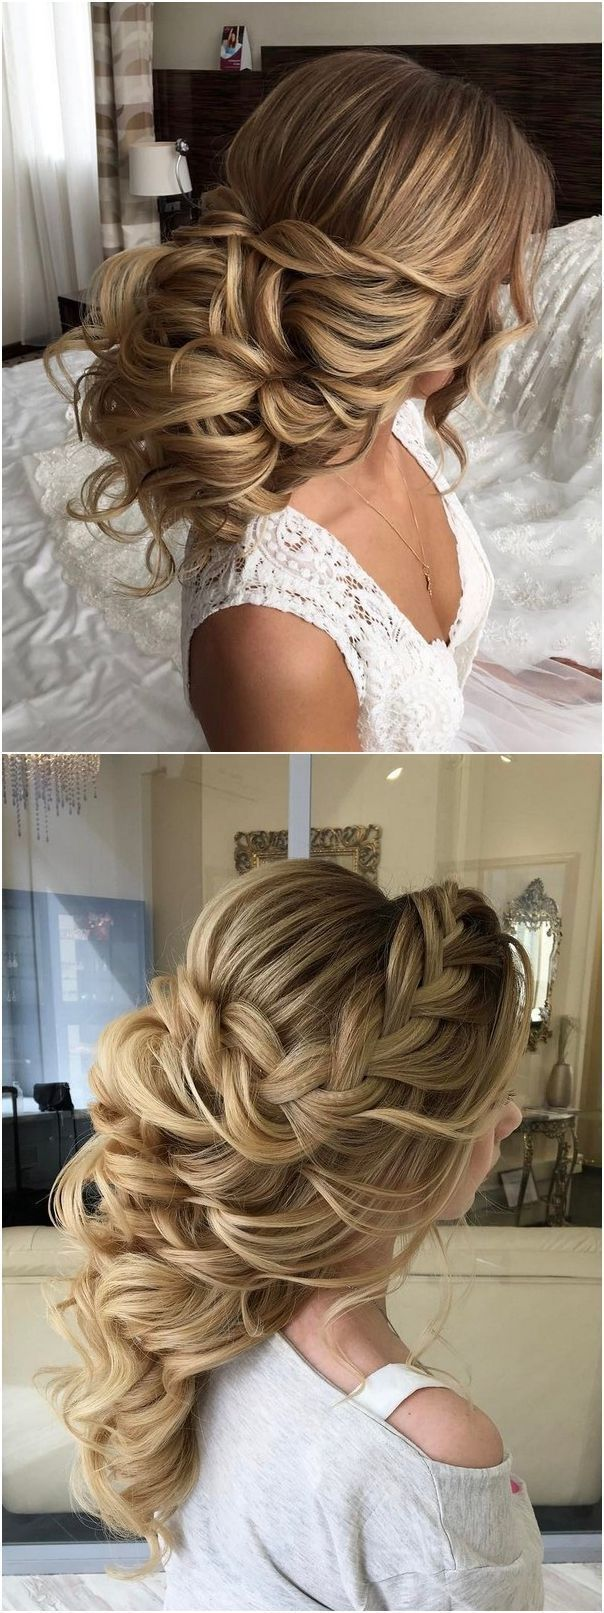 Long wedding updos and hairstyles from elstile weddings